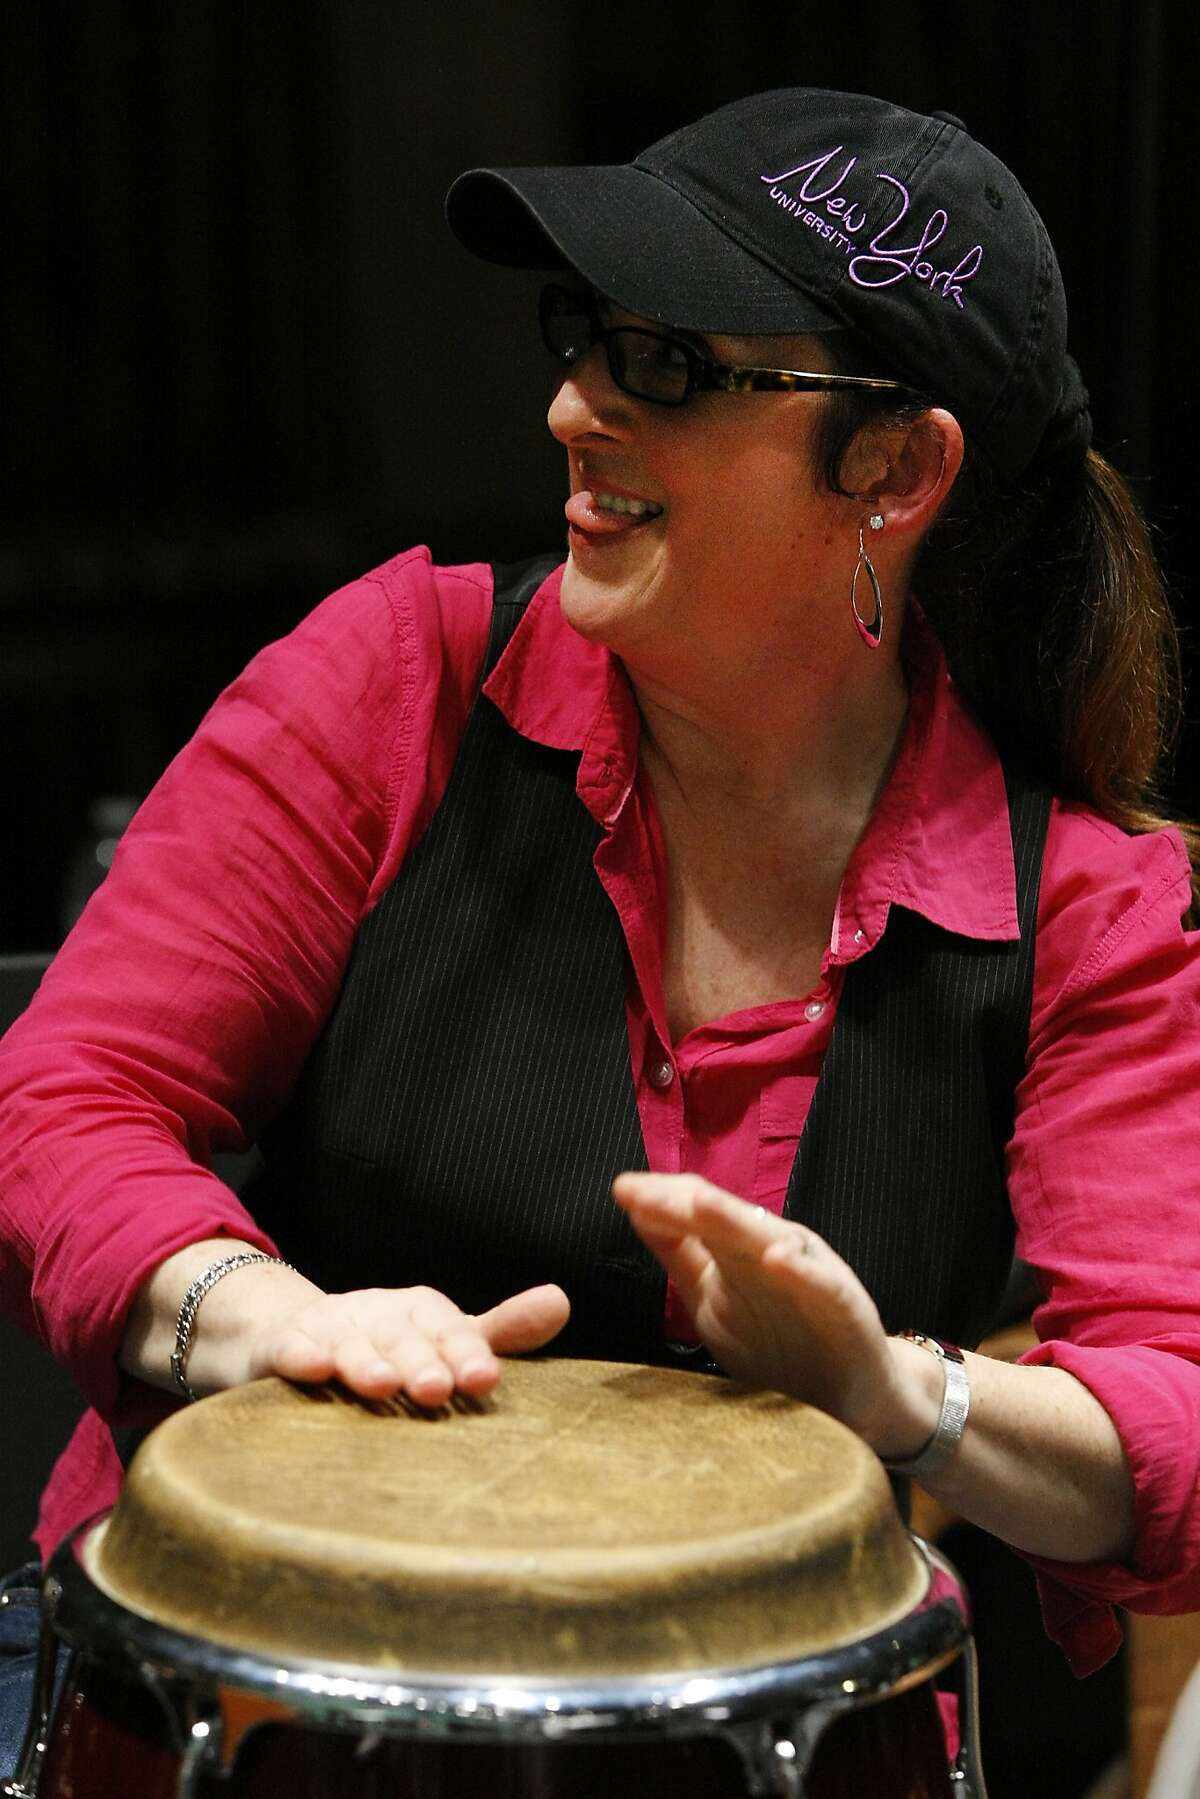 Rebeca Mauleon plays a conga drum during a jam session at the end of the JazzGirls Day performance at the Berkeley High Community Theater in Berkeley, CA, Saturday, March 8, 2014.